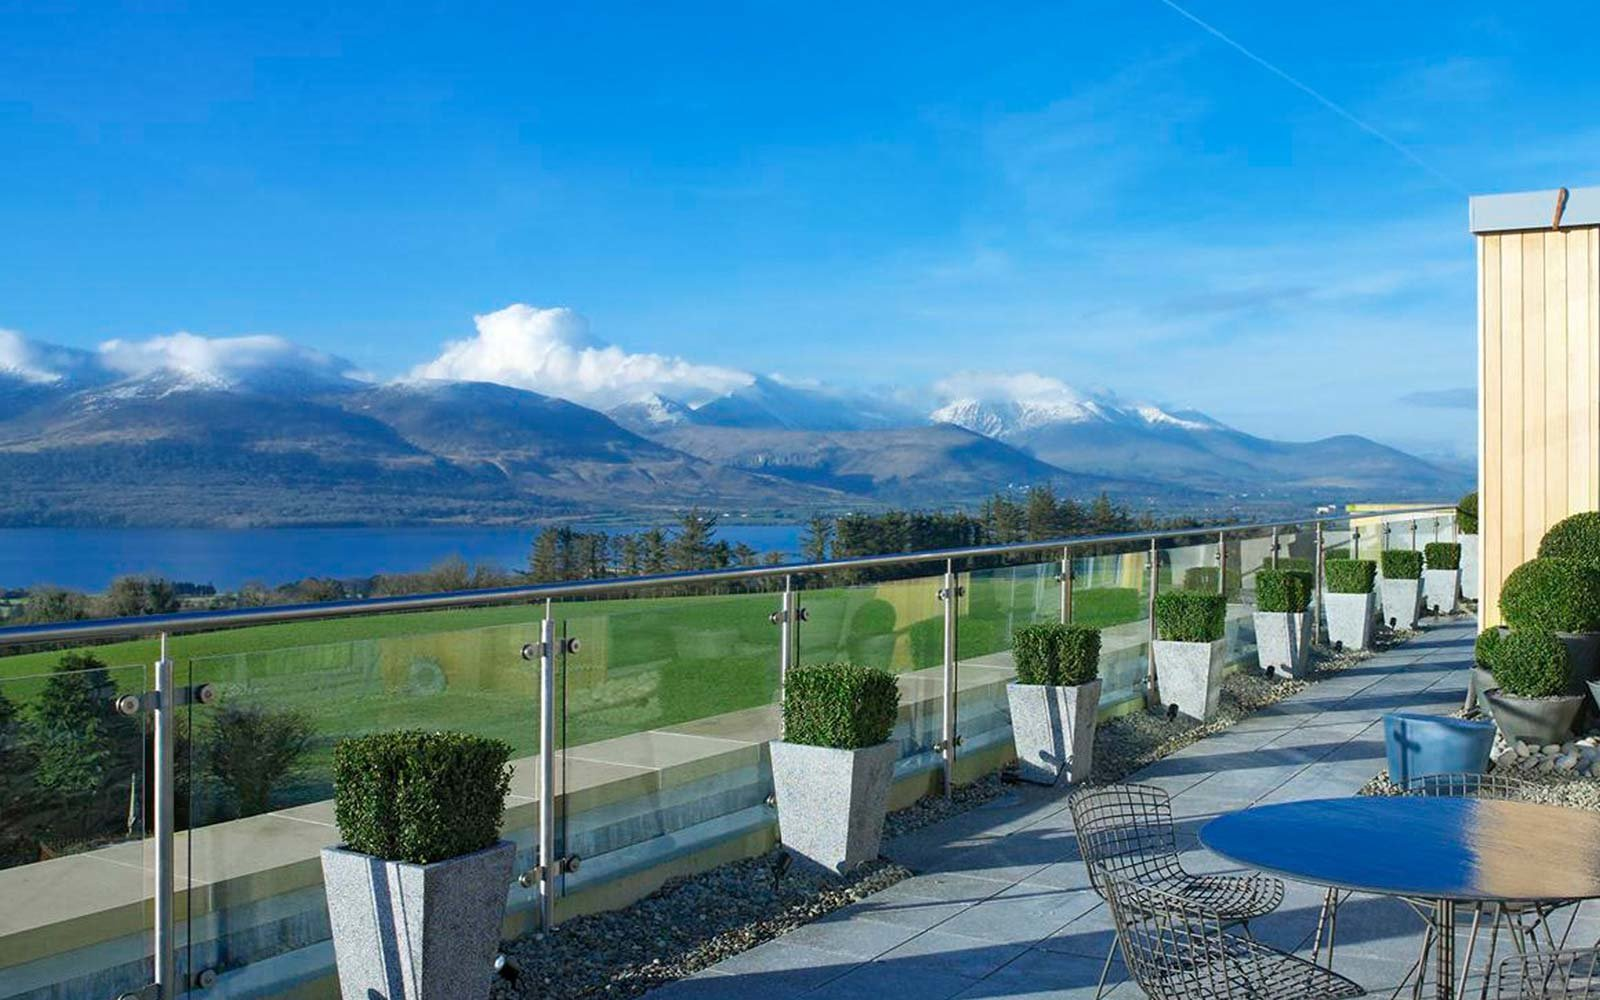 Aghadoe Heights Hotel Spa